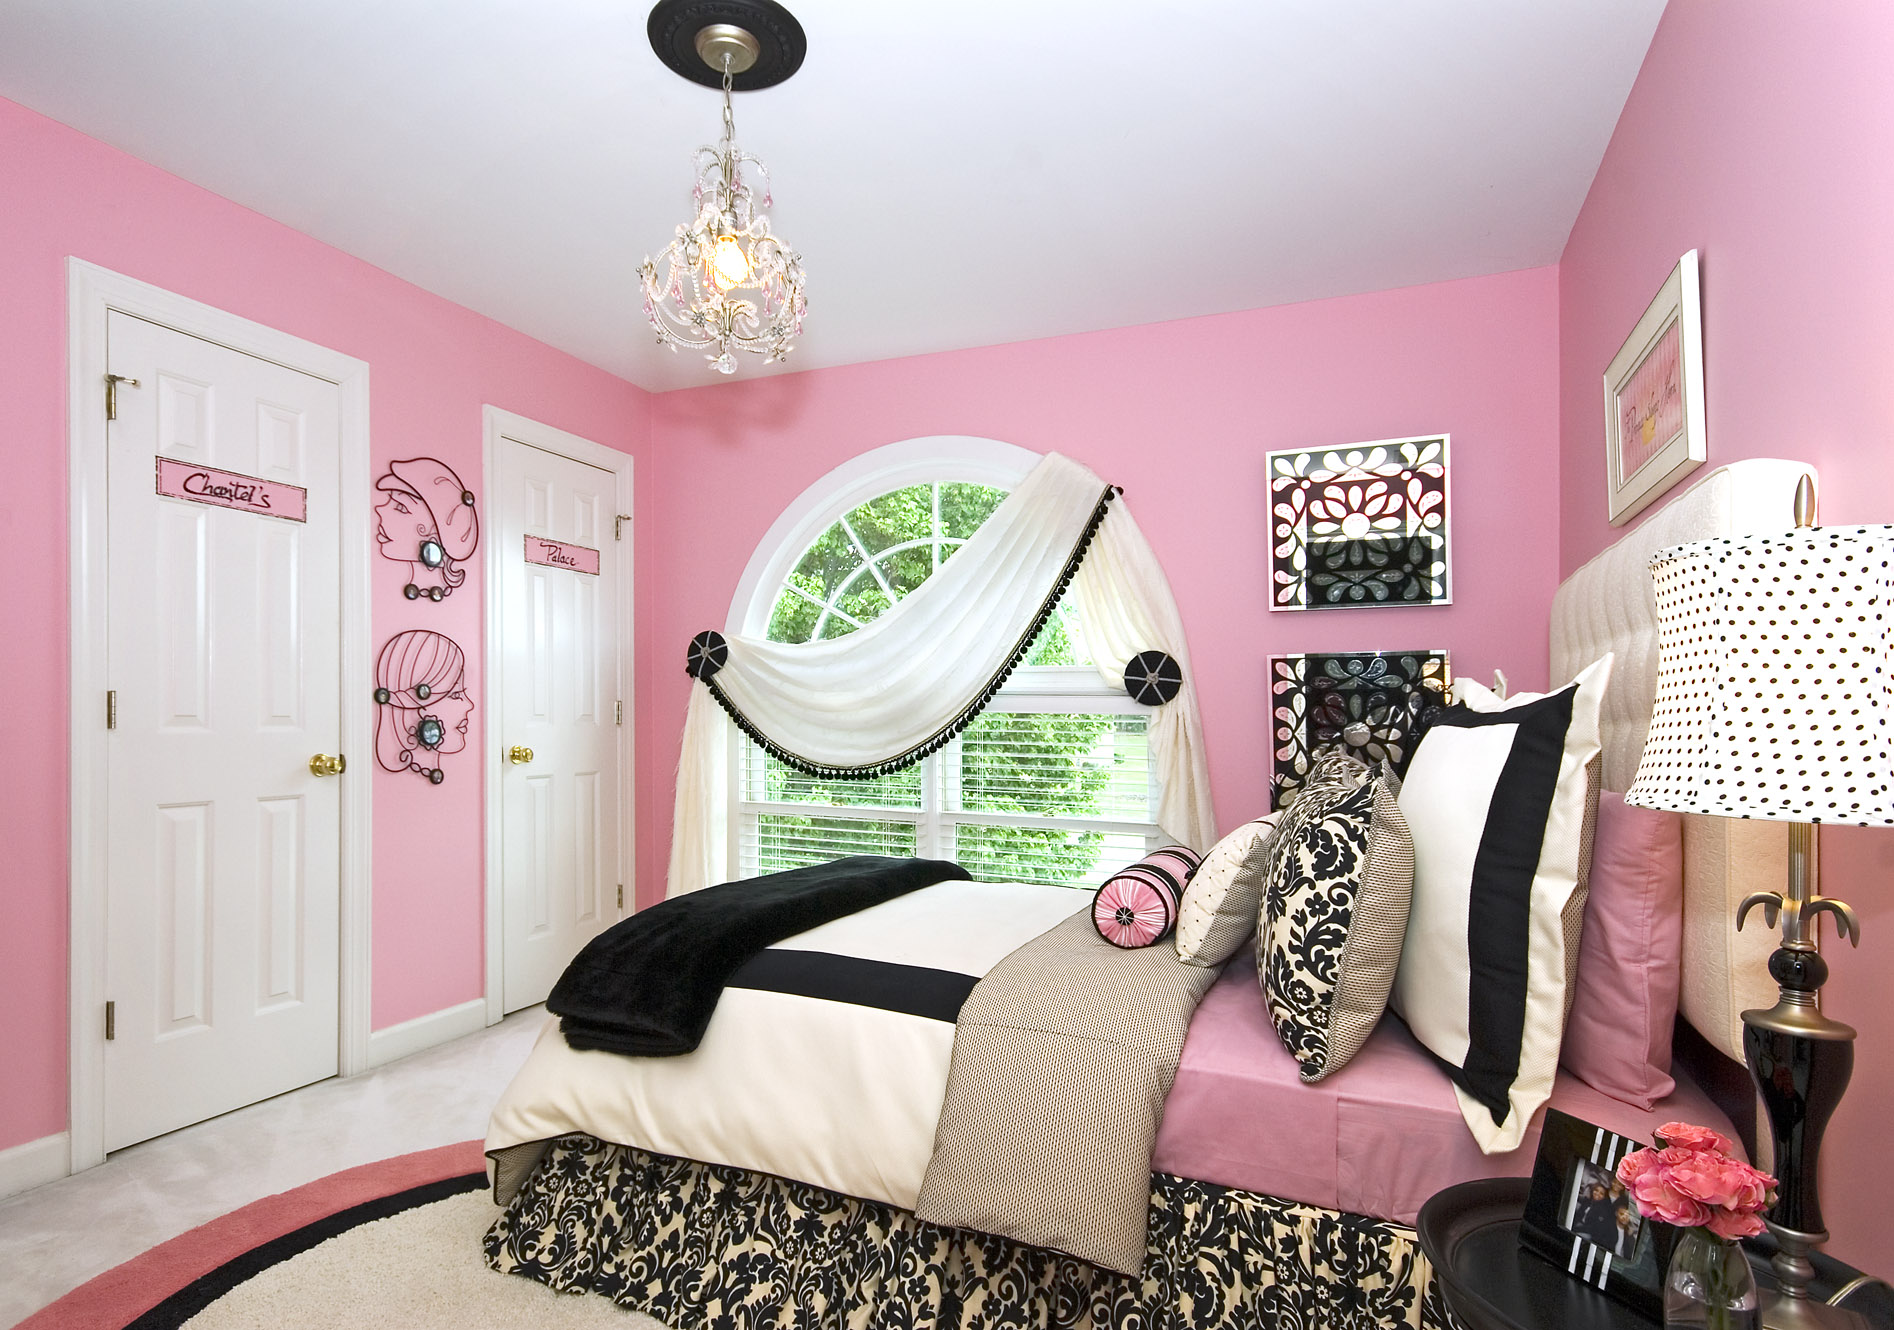 Bedroom designs for teenage girls and Beautiful Teenage ... on Room Design For Girls Teenagers  id=45191